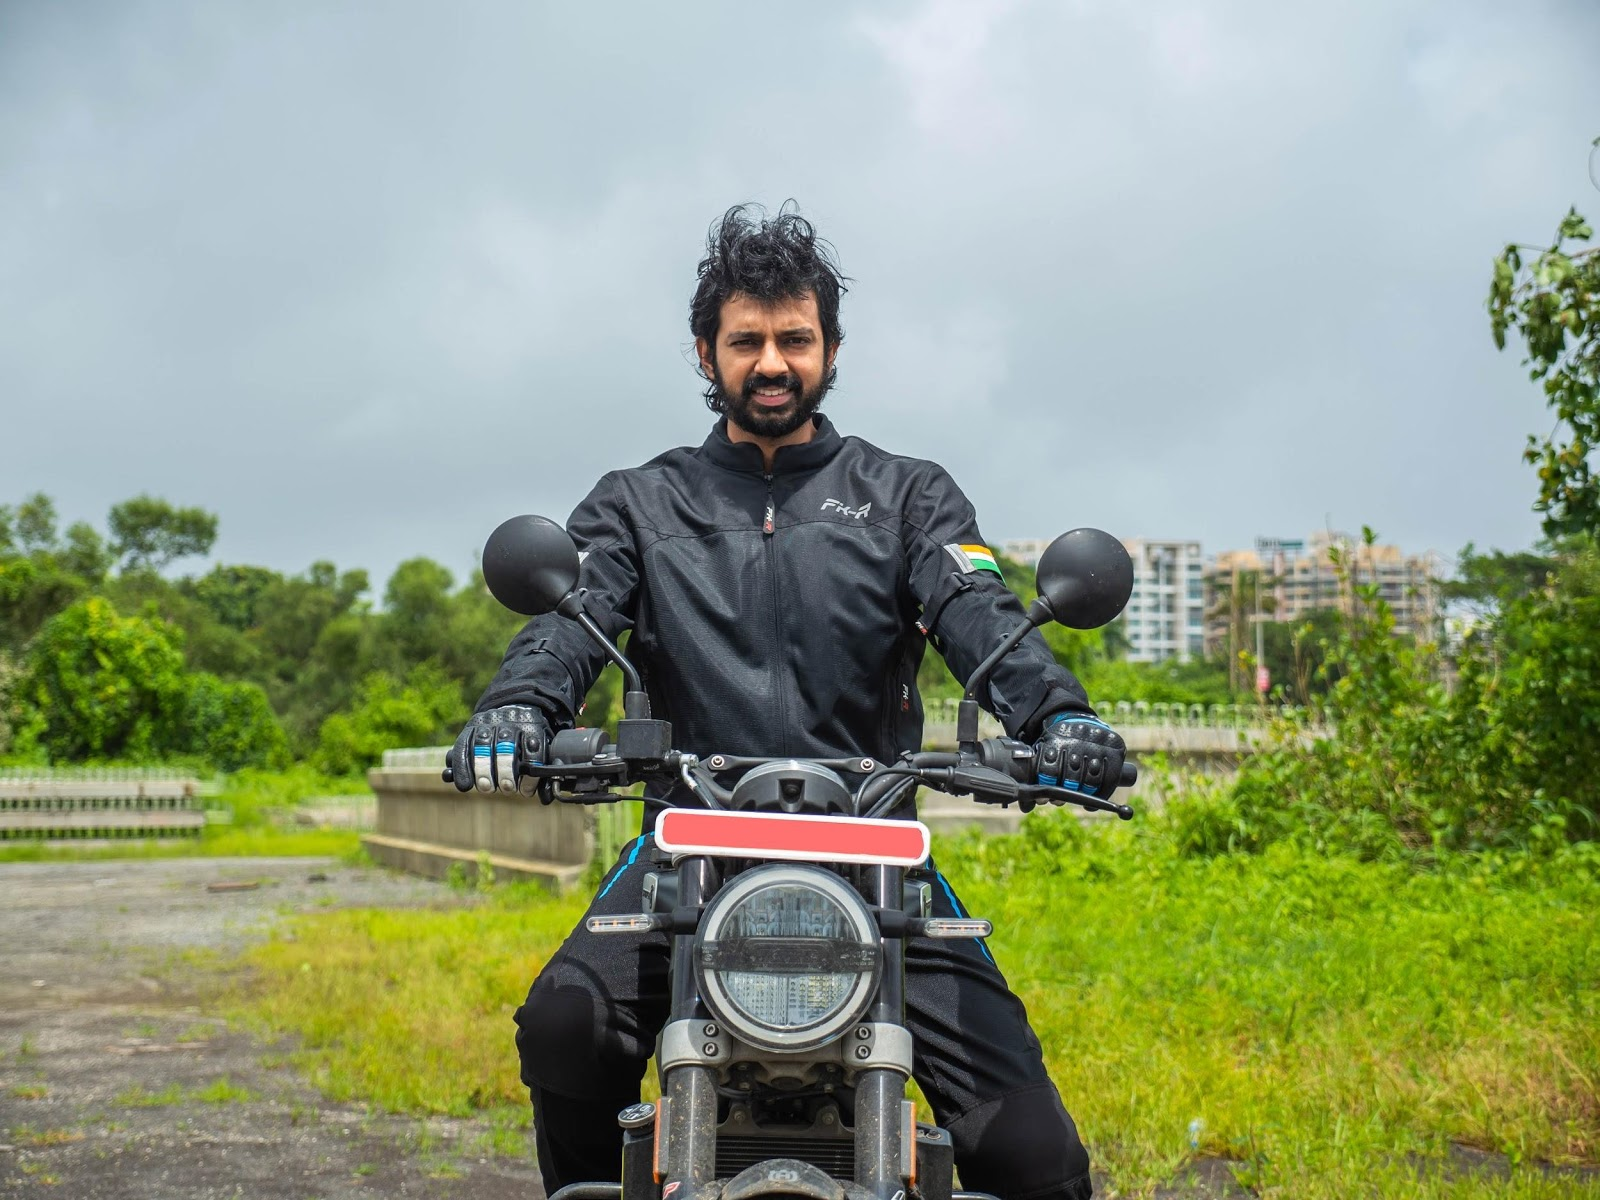 Faisal Khan's Premium and Sustainable Riding Brand 'FK-R' Proves that World-Class Manufacturing is Possible in India